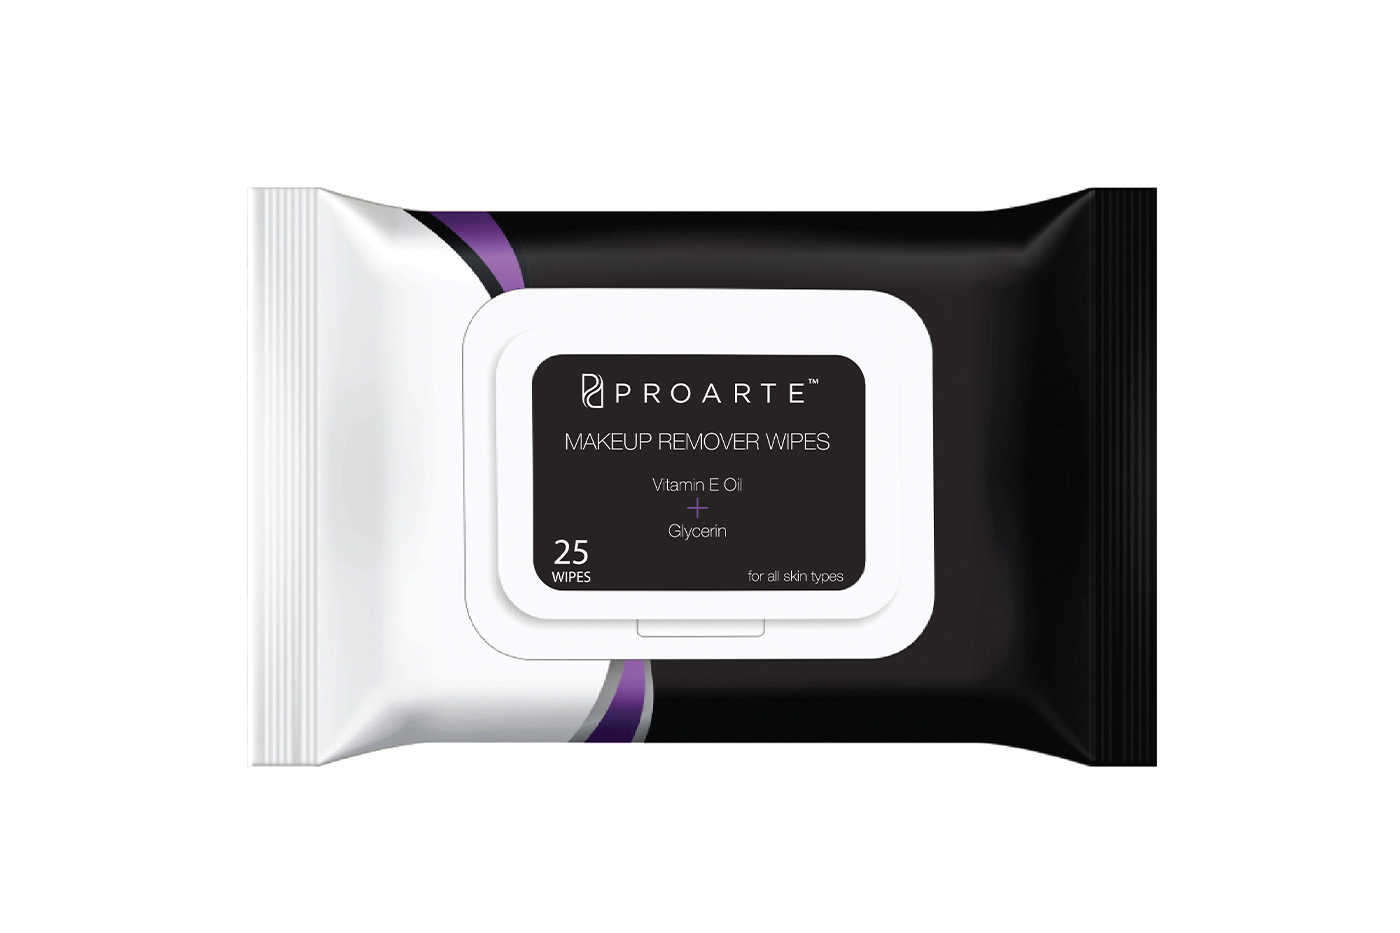 Proarte's bio-degradable makeup remover wipes